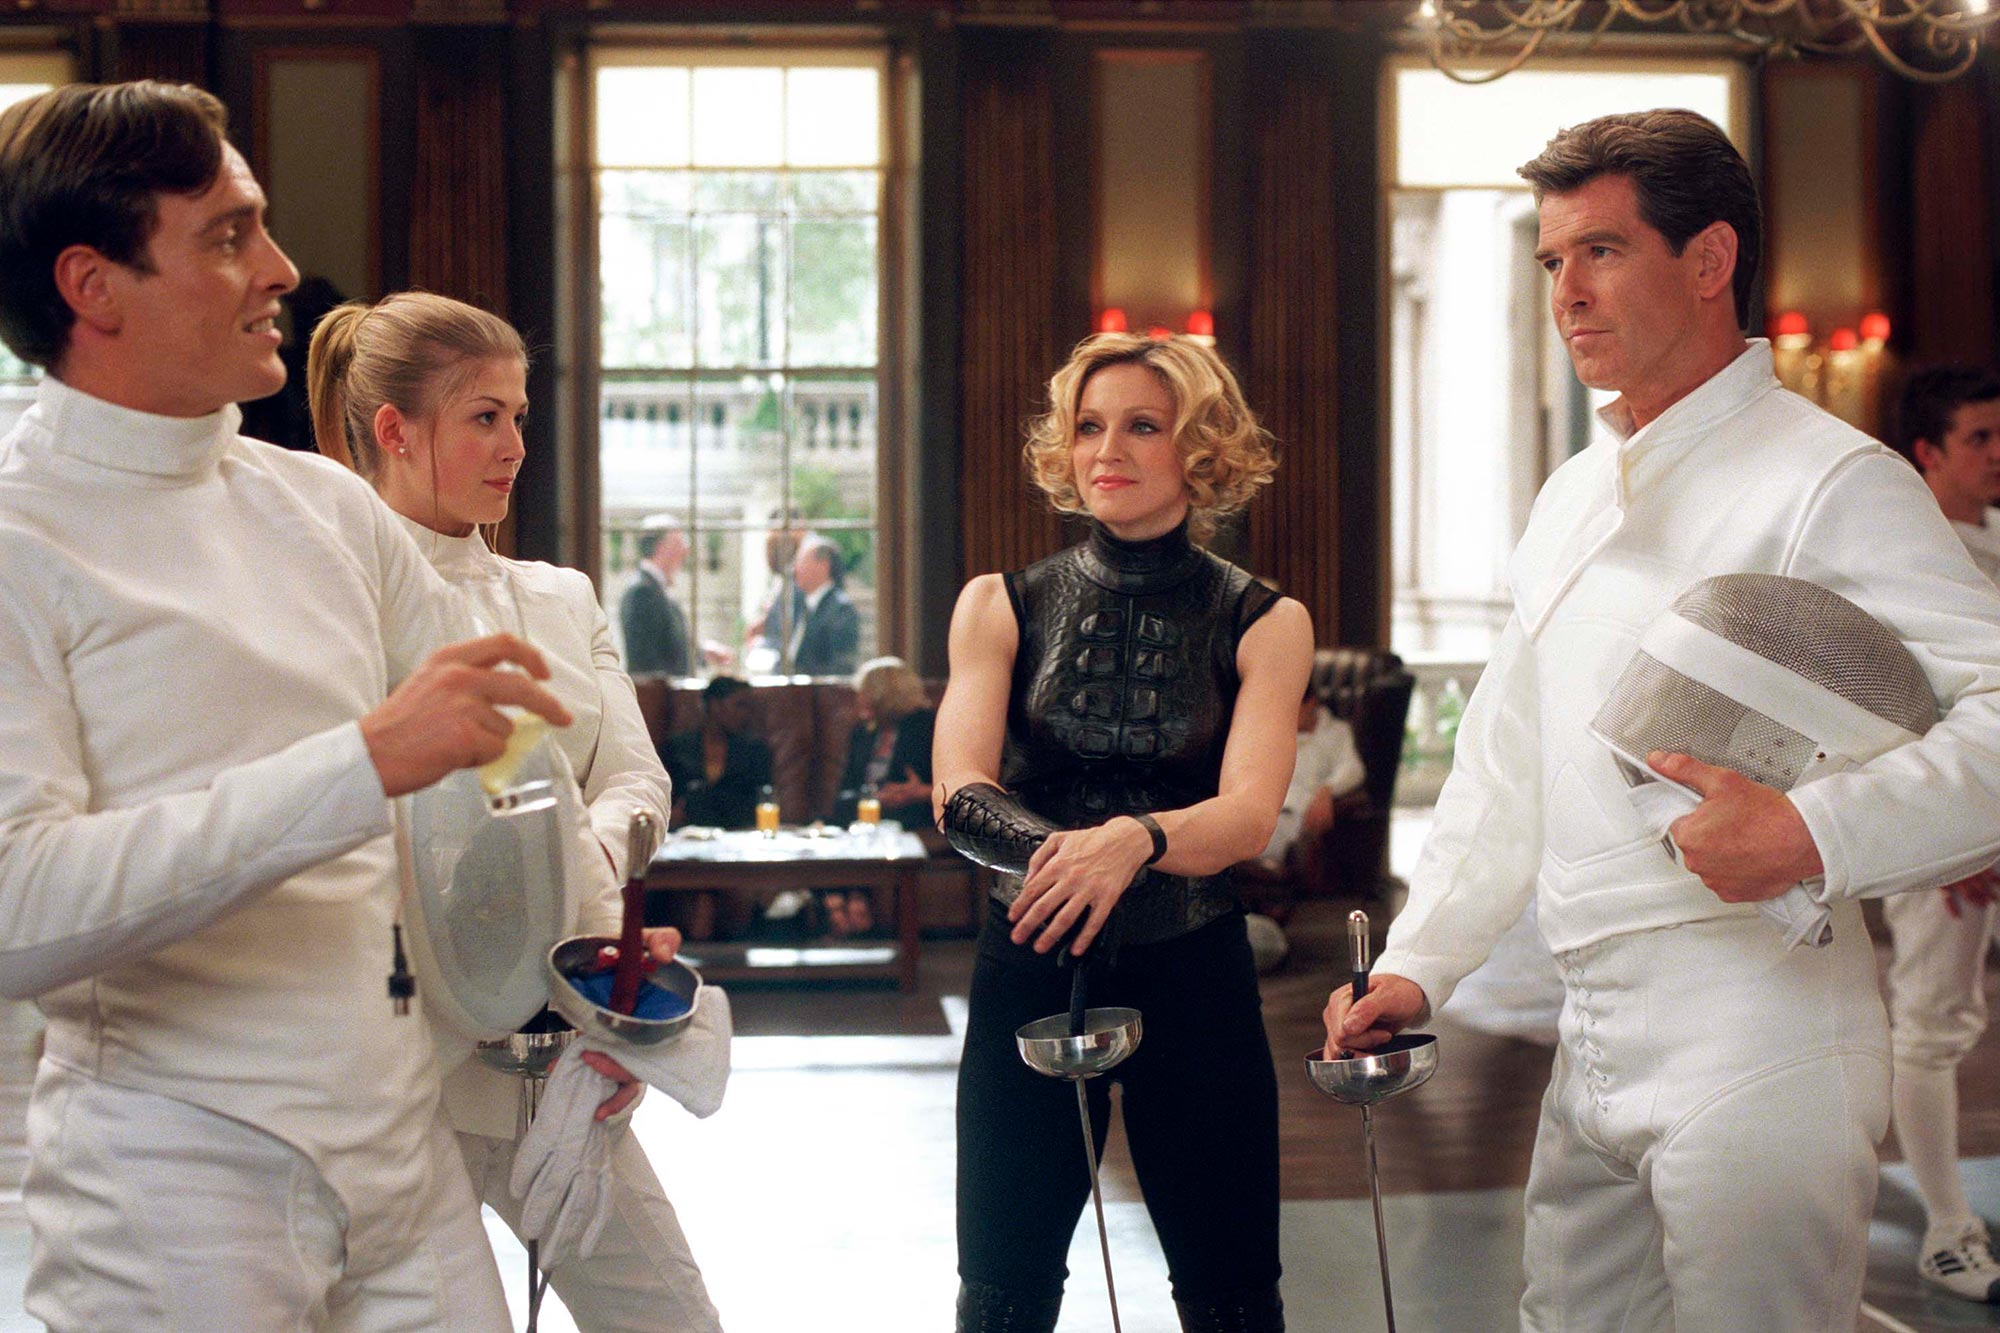 Bond Cameos - Madonna in Die Another Day